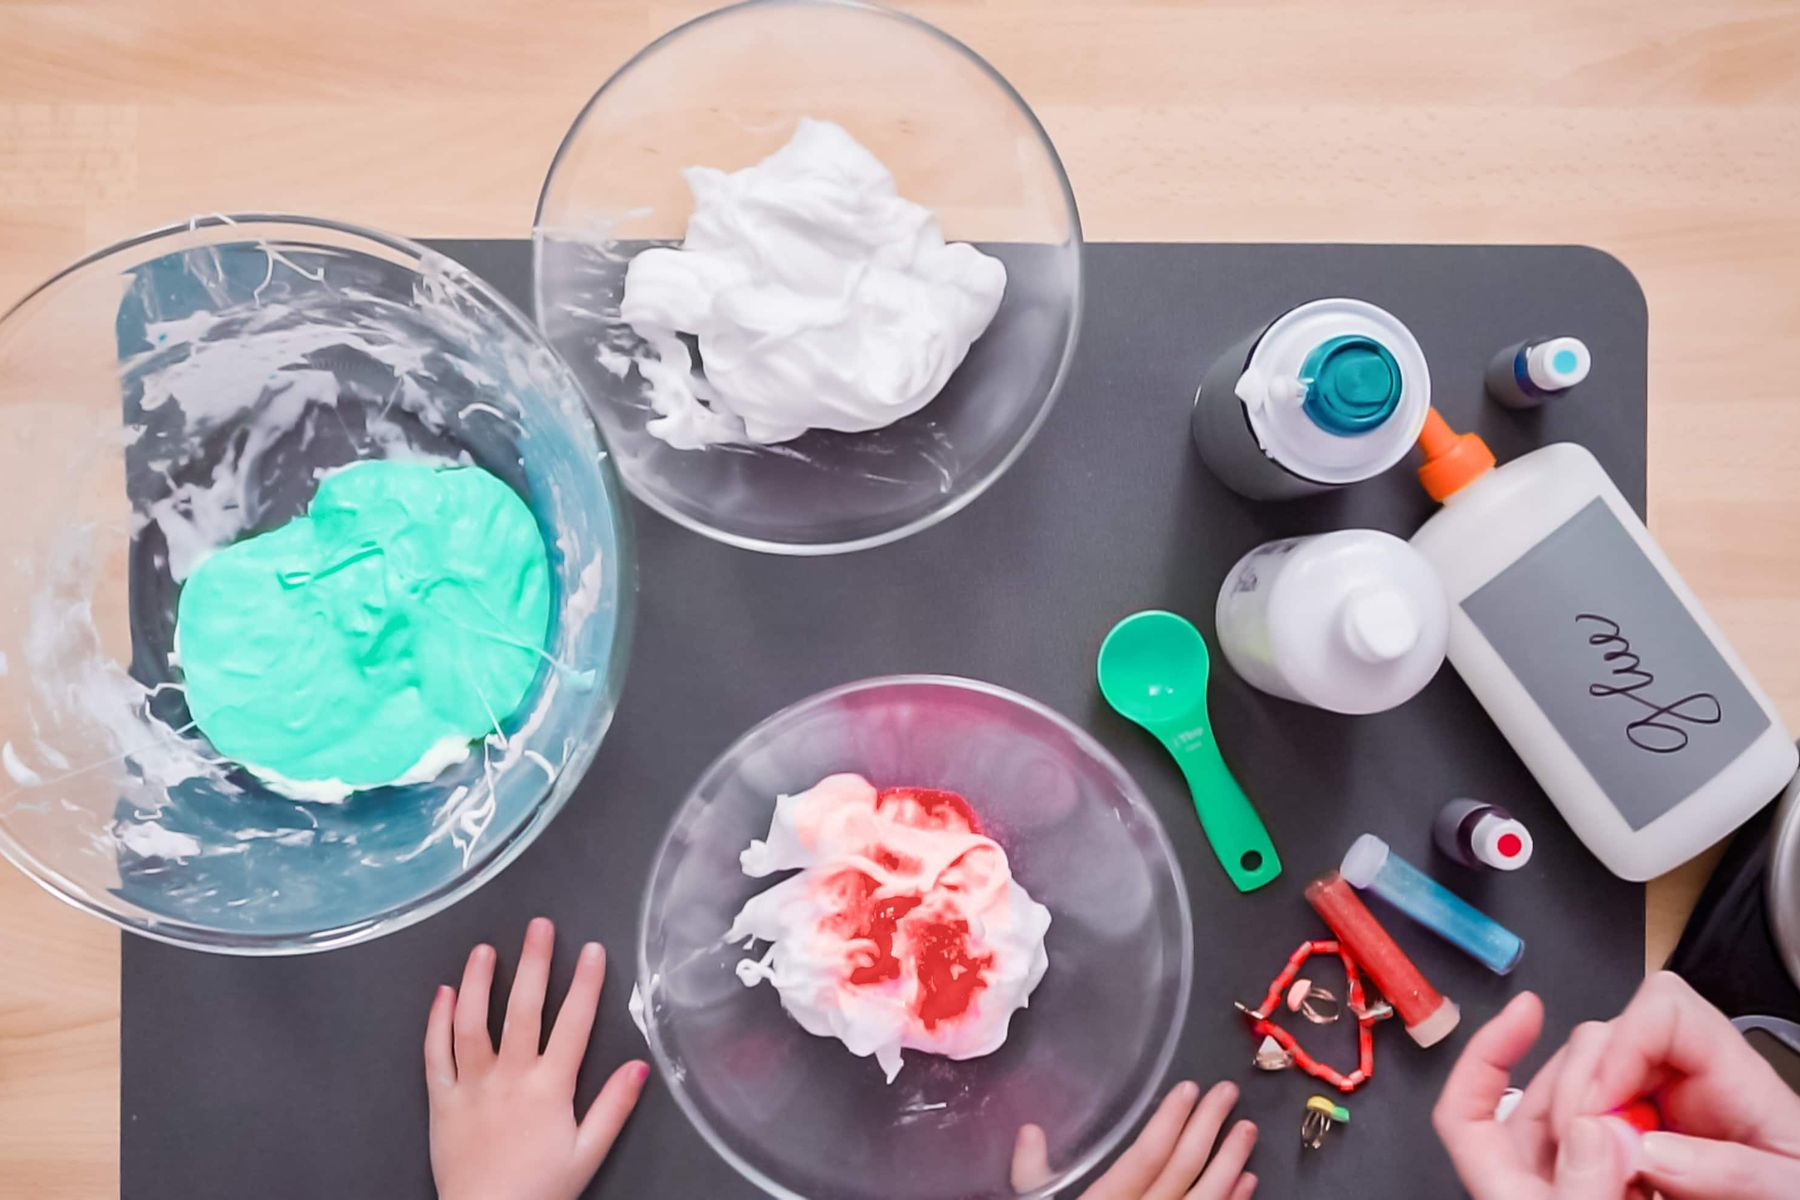 Learn how to make slime at home (and how to get slime off of clothes after!)